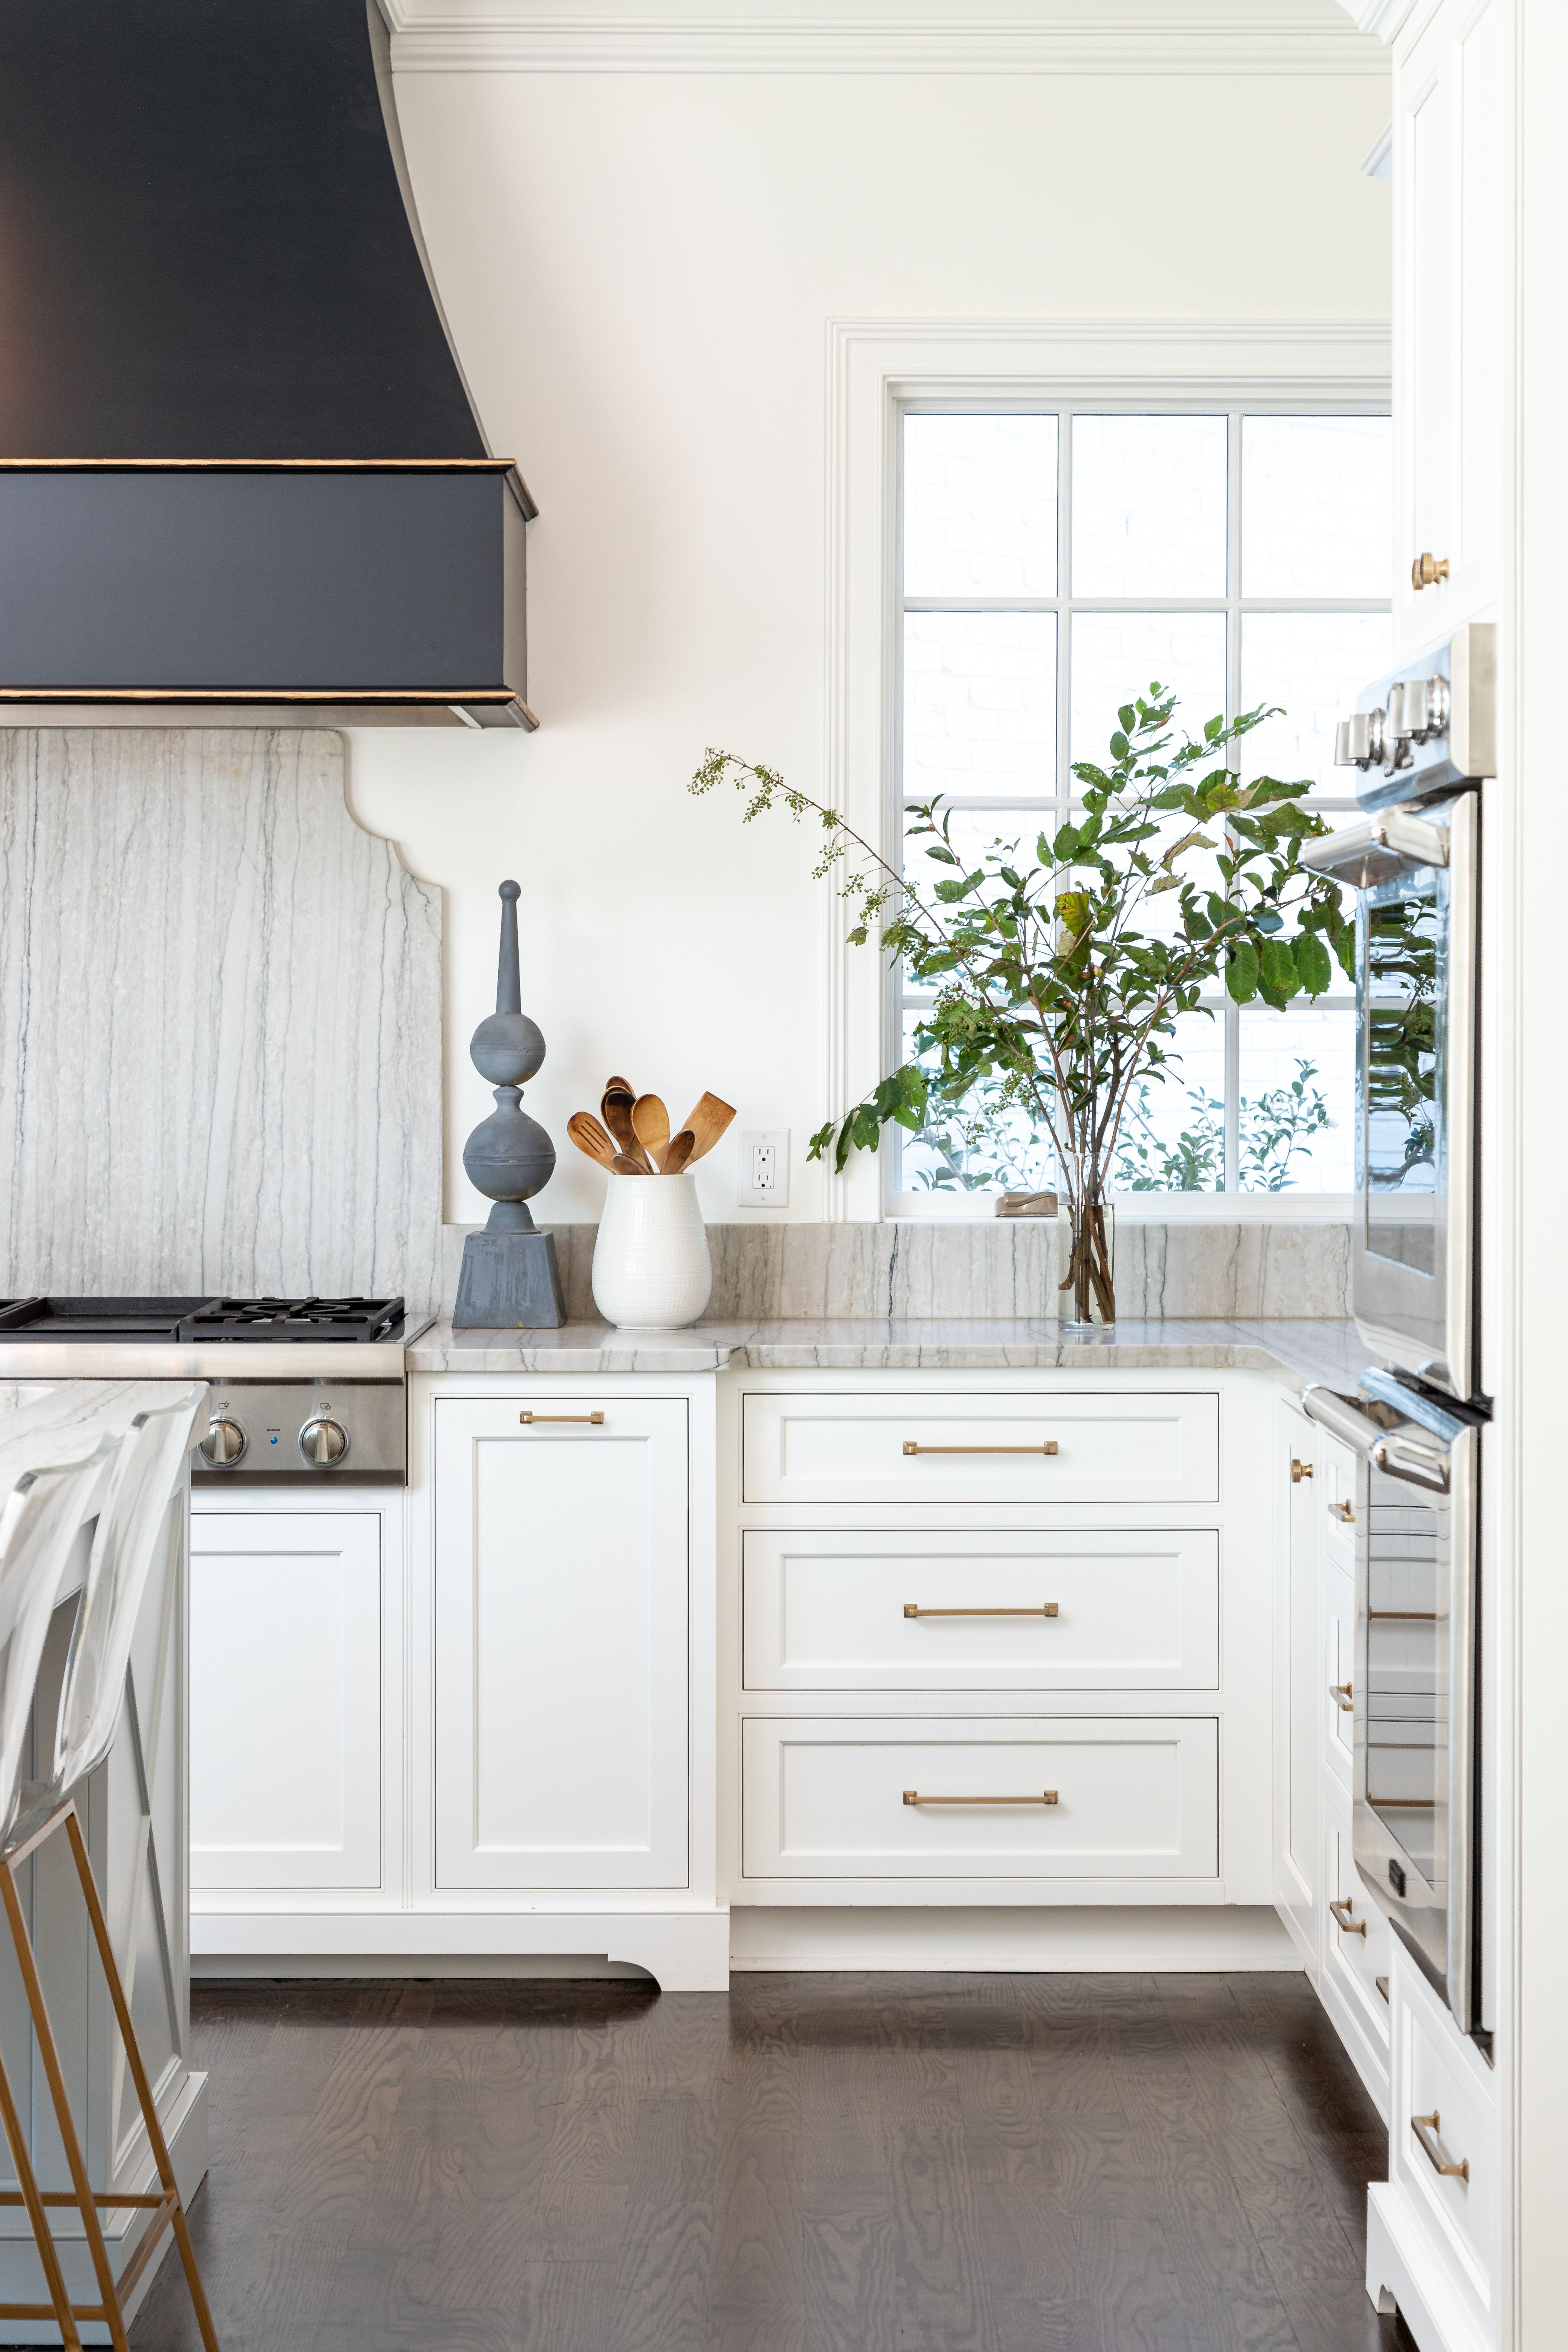 White Beaded Inset Kitchen With French Swoop Hood Home Kitchens Home Decor Kitchen Kitchen Interior